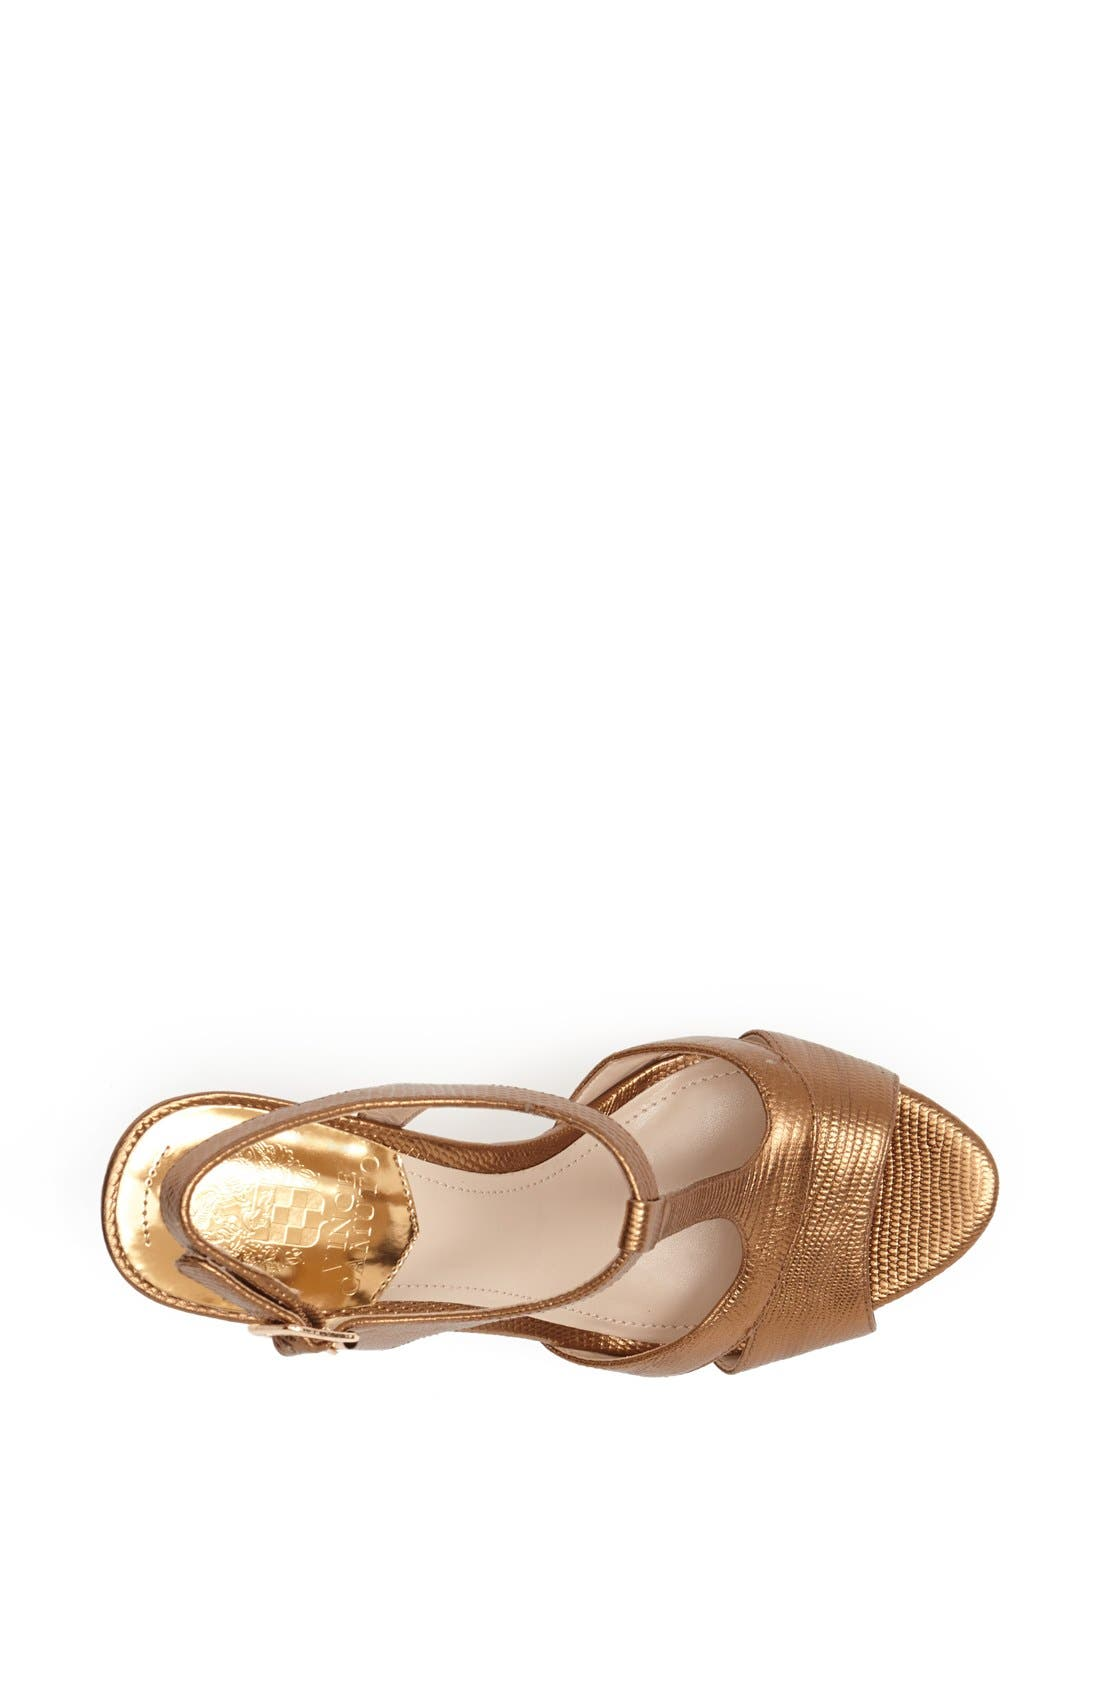 Alternate Image 3  - Vince Camuto 'Inslo' Wedge Sandal